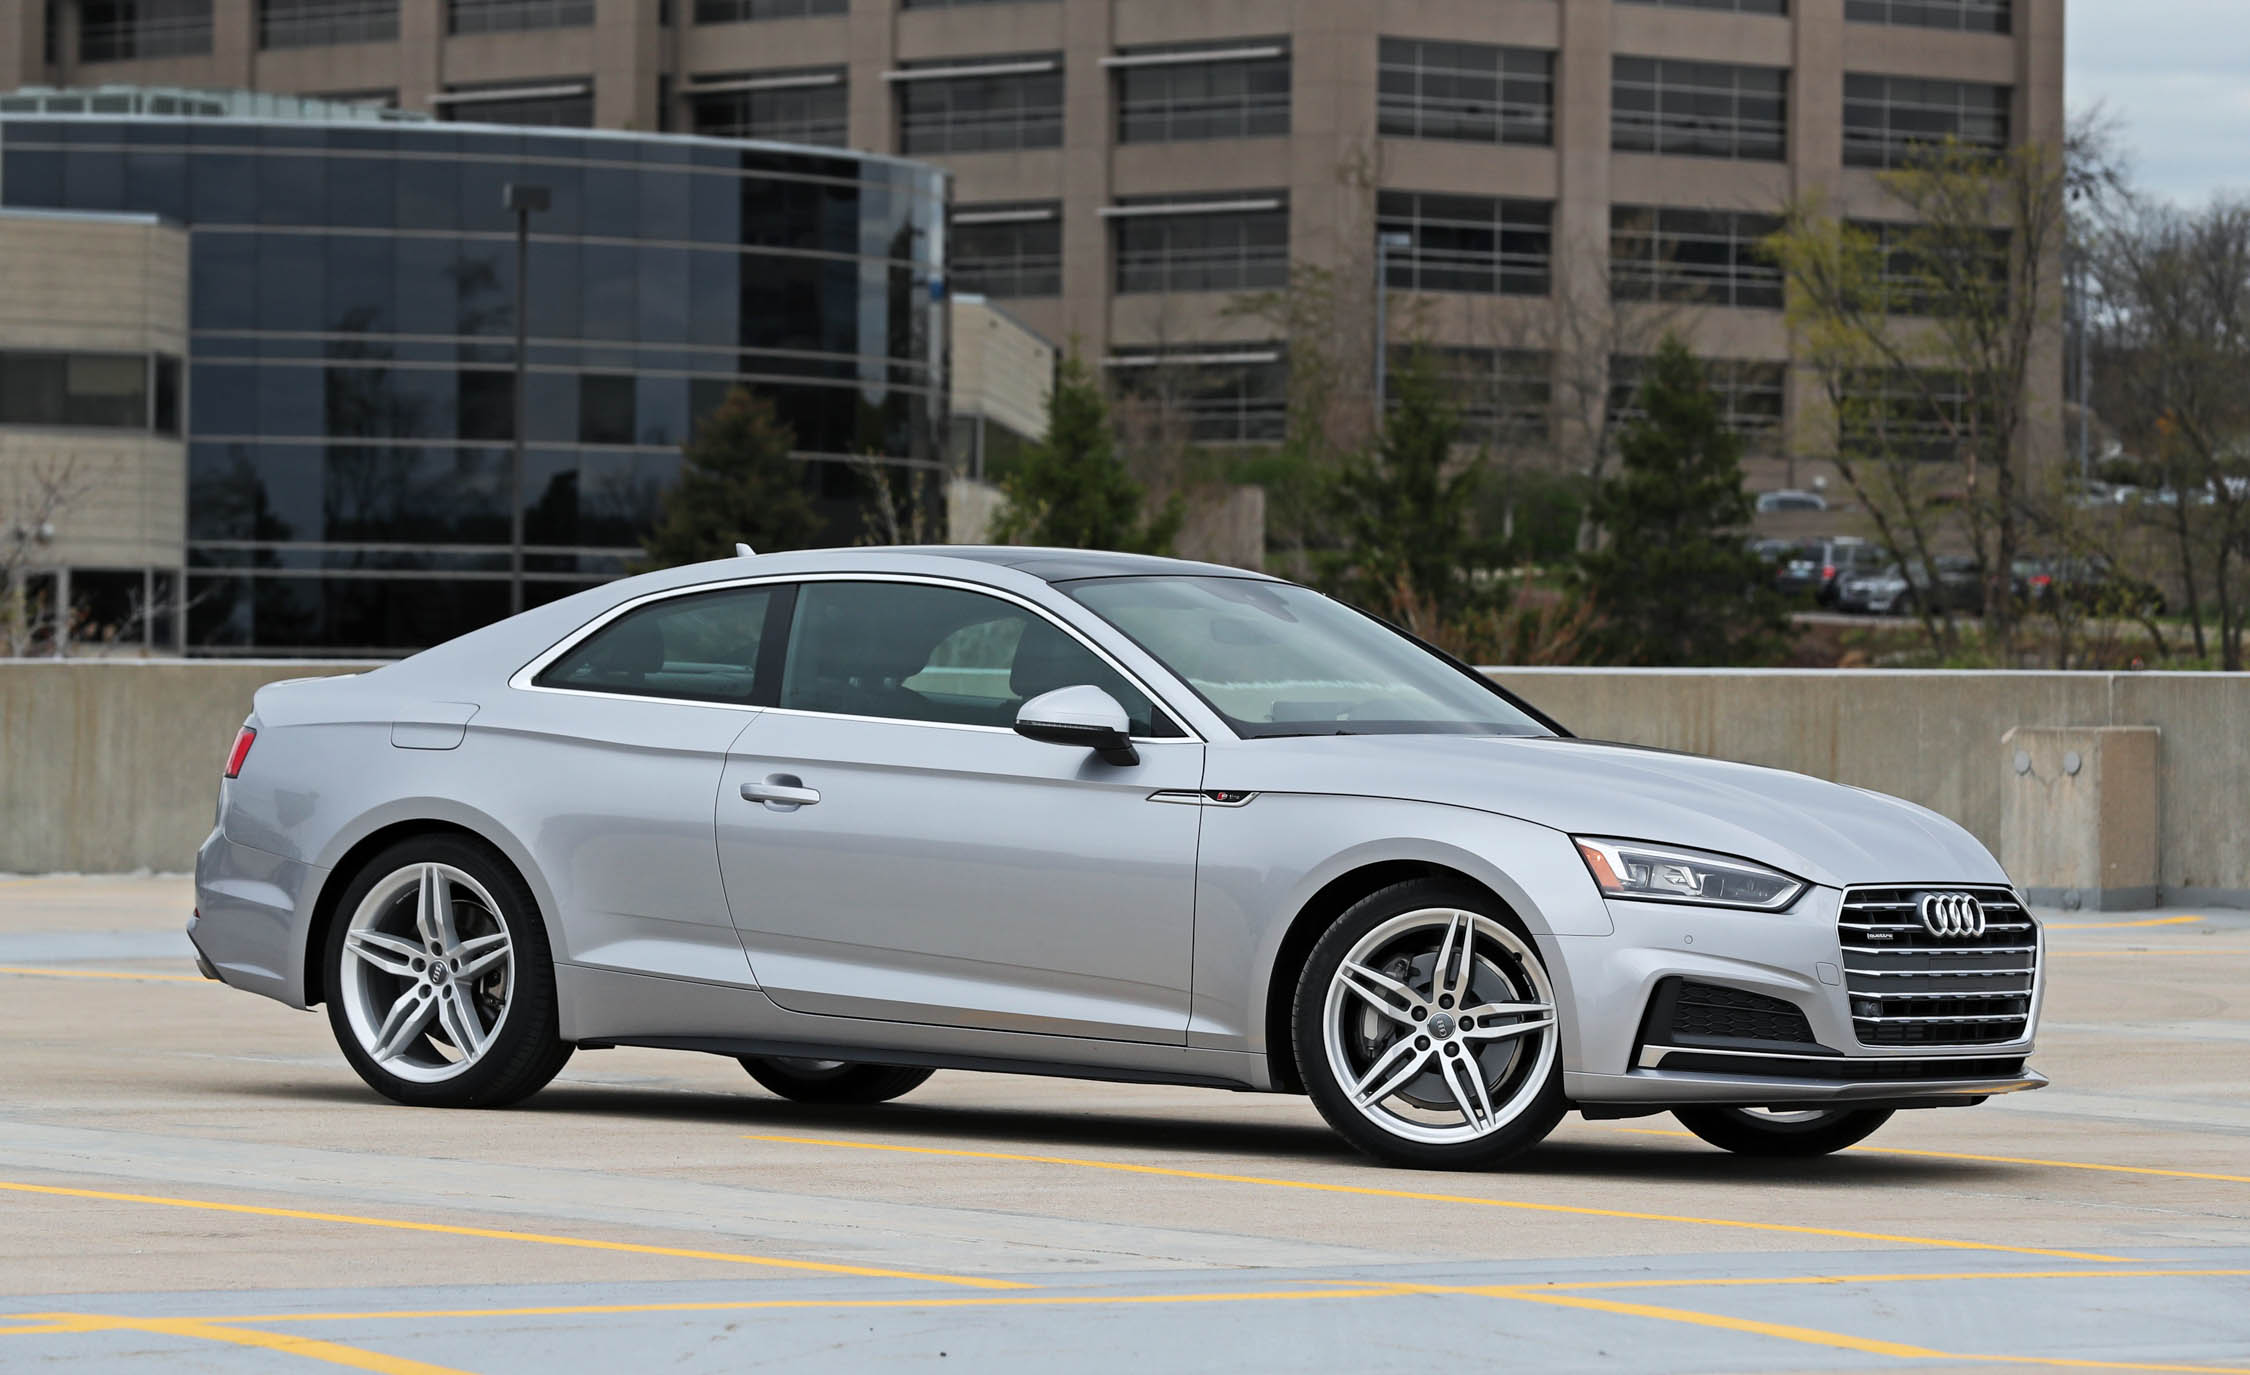 2018 Audi A5 Coupe Exterior Silver Metallic (Photo 7 of 50)